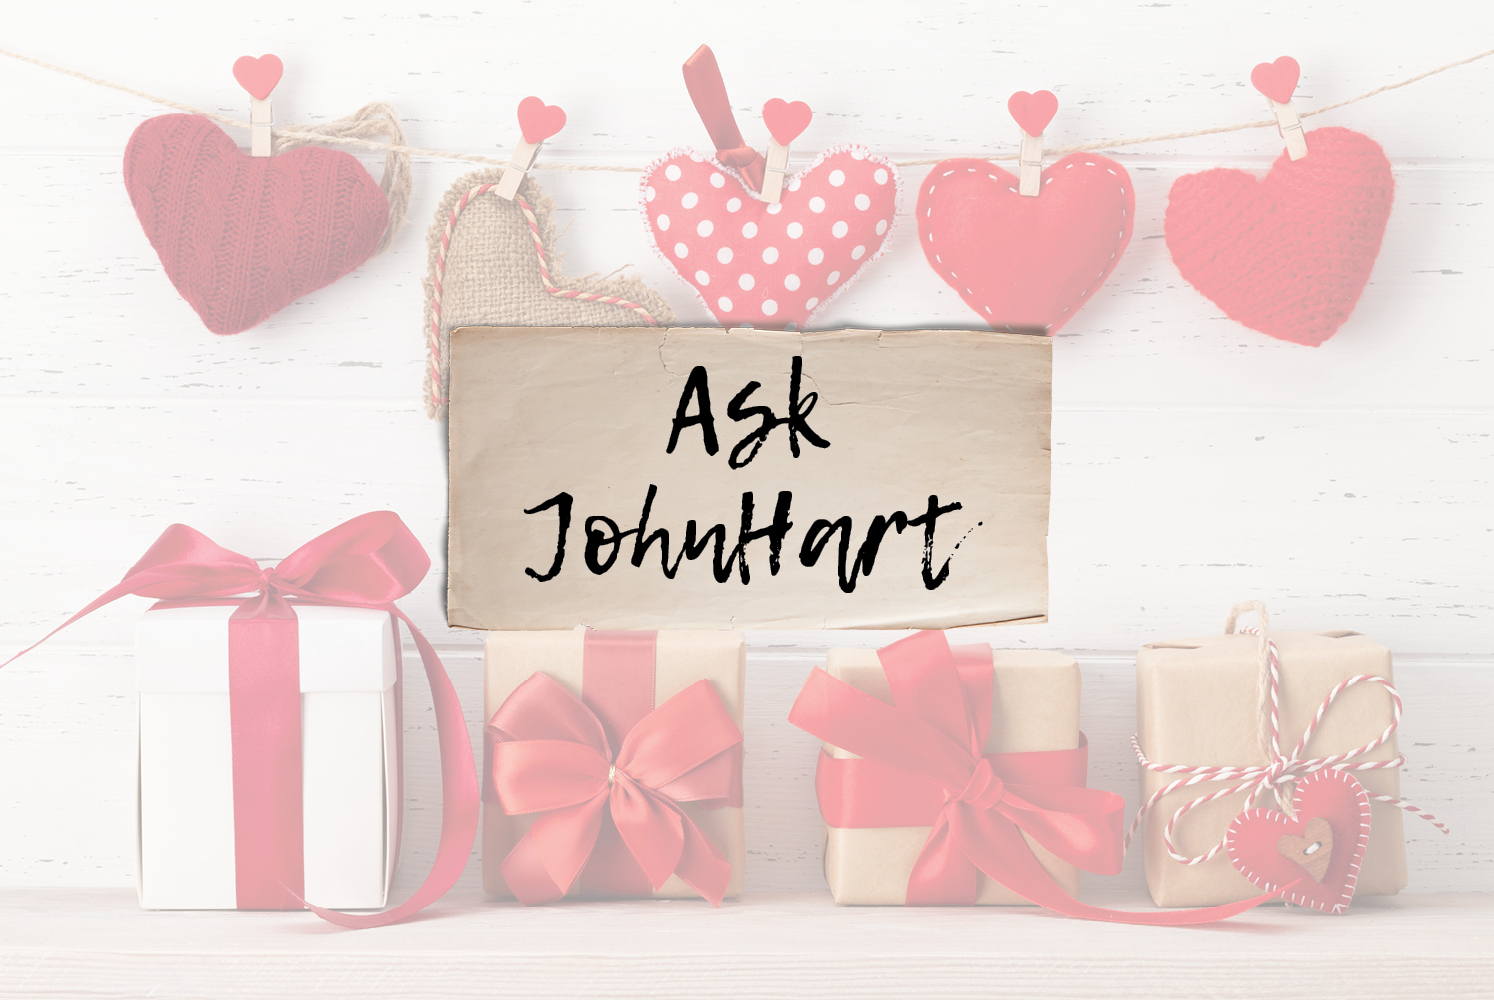 Ask JohnHart: Valentine's Day edition, with hearts and wrapped presents